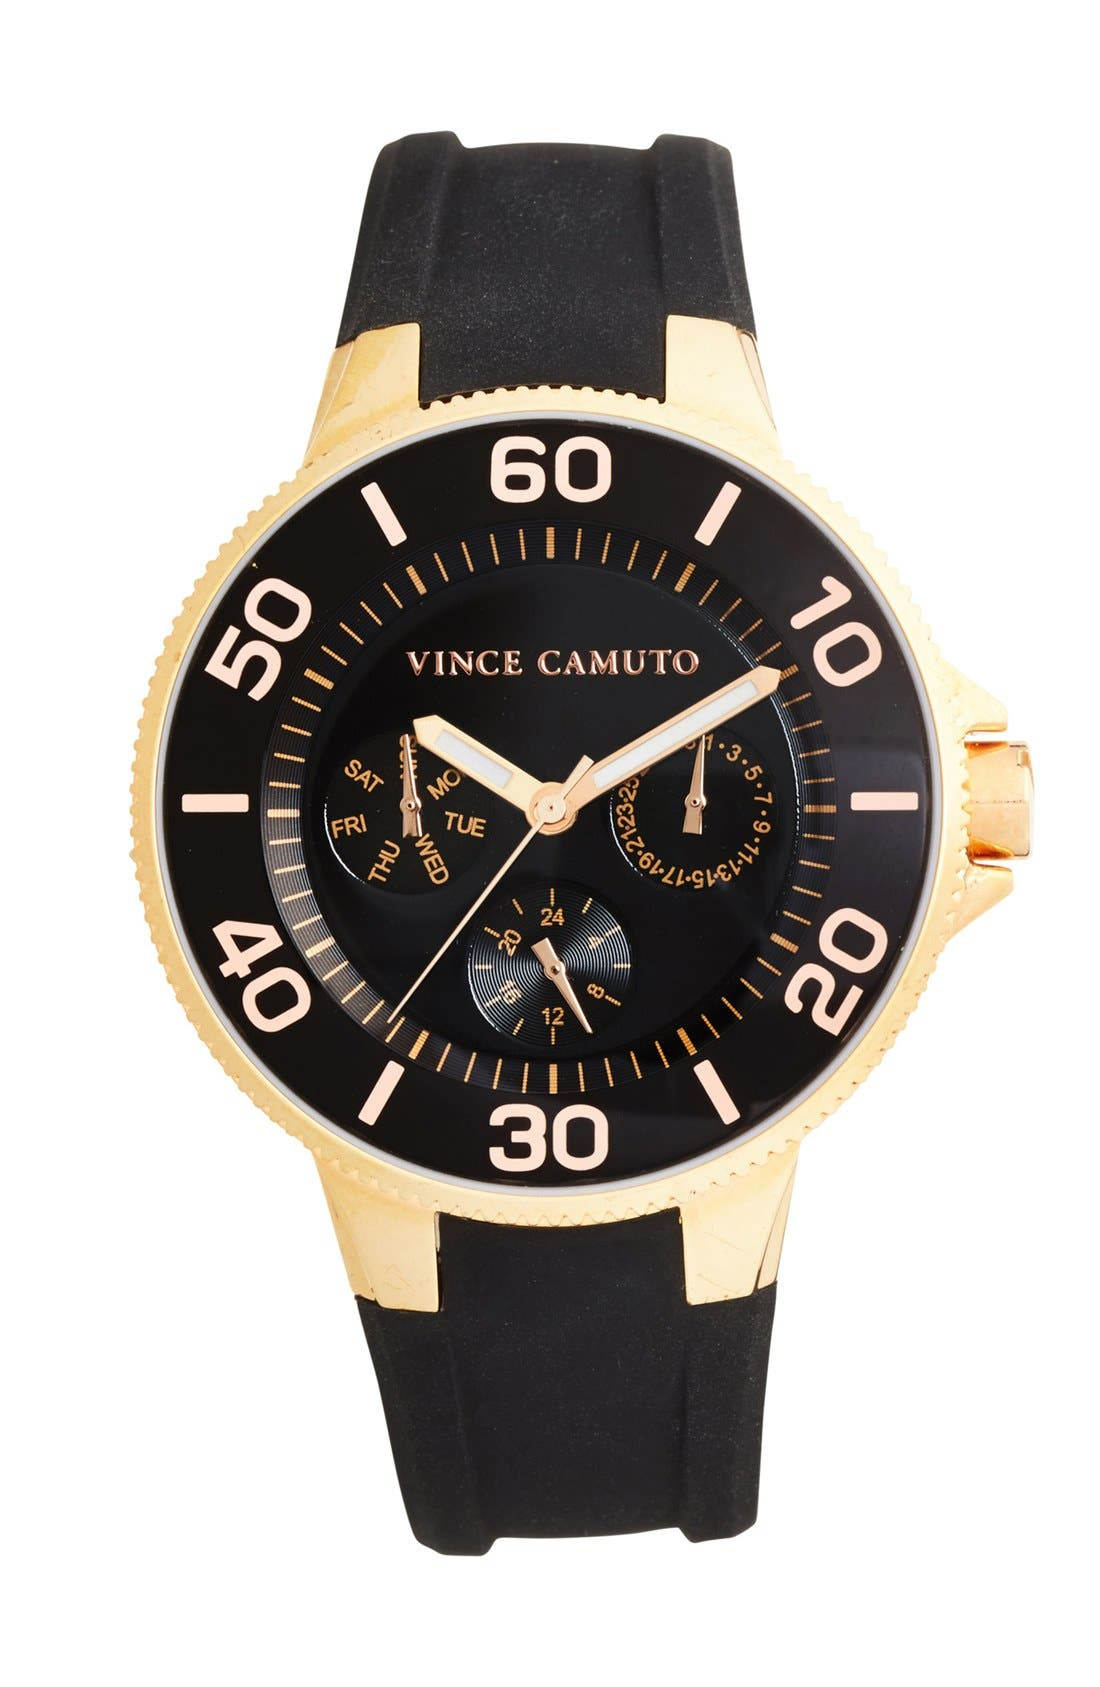 VINCE CAMUTO, Silicone Strap Watch, 38mm, Main thumbnail 1, color, 001